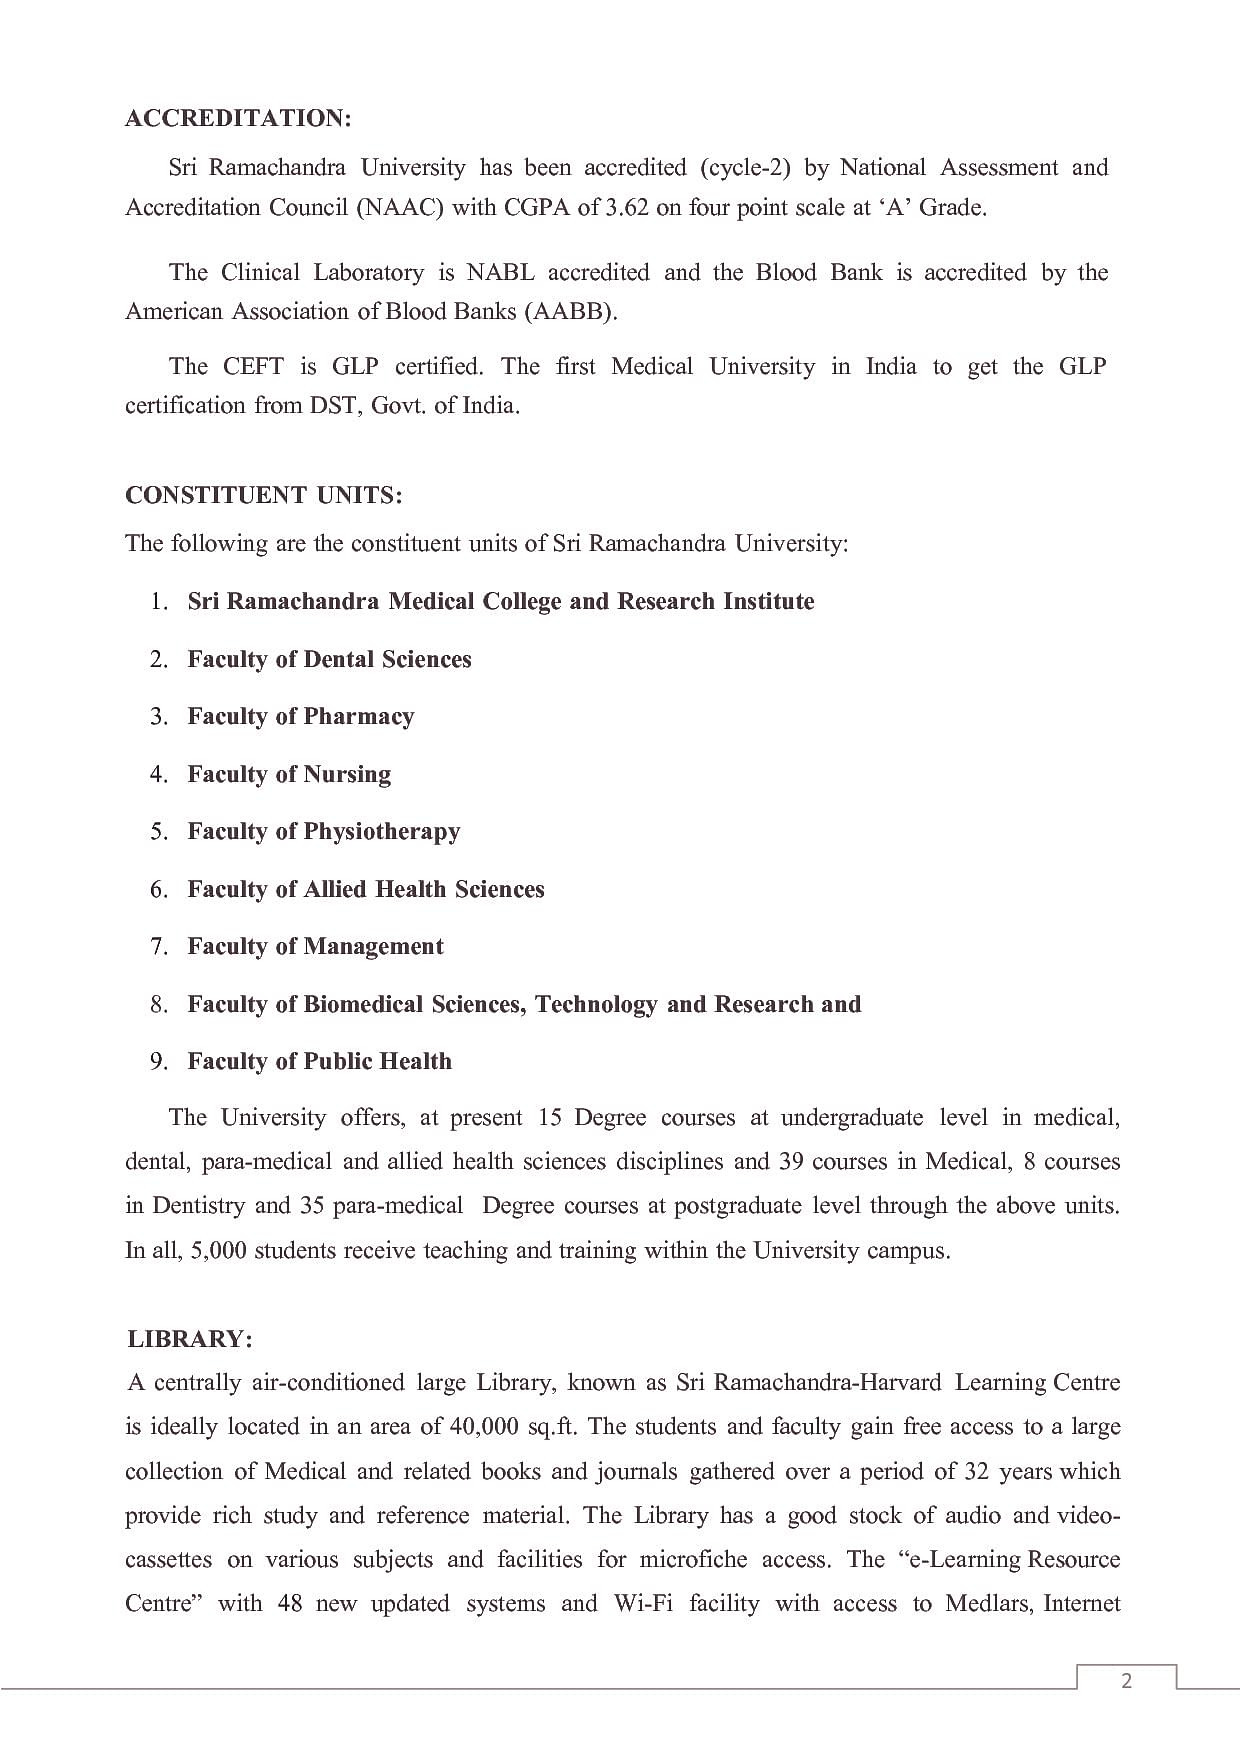 Sri Ramachandra University, Chennai - Admissions, Contact, Website on medical background, medical application letter, medical interview, medical questionnaire, medical application printable, medical application design, medical management, medical floor plan, medical rules, medical history, medical insurance, medical training, medical application symbol, medical articles, medical references, medical schedule, medical resume, medical apps, medical letters of recommendation, healthcare form,